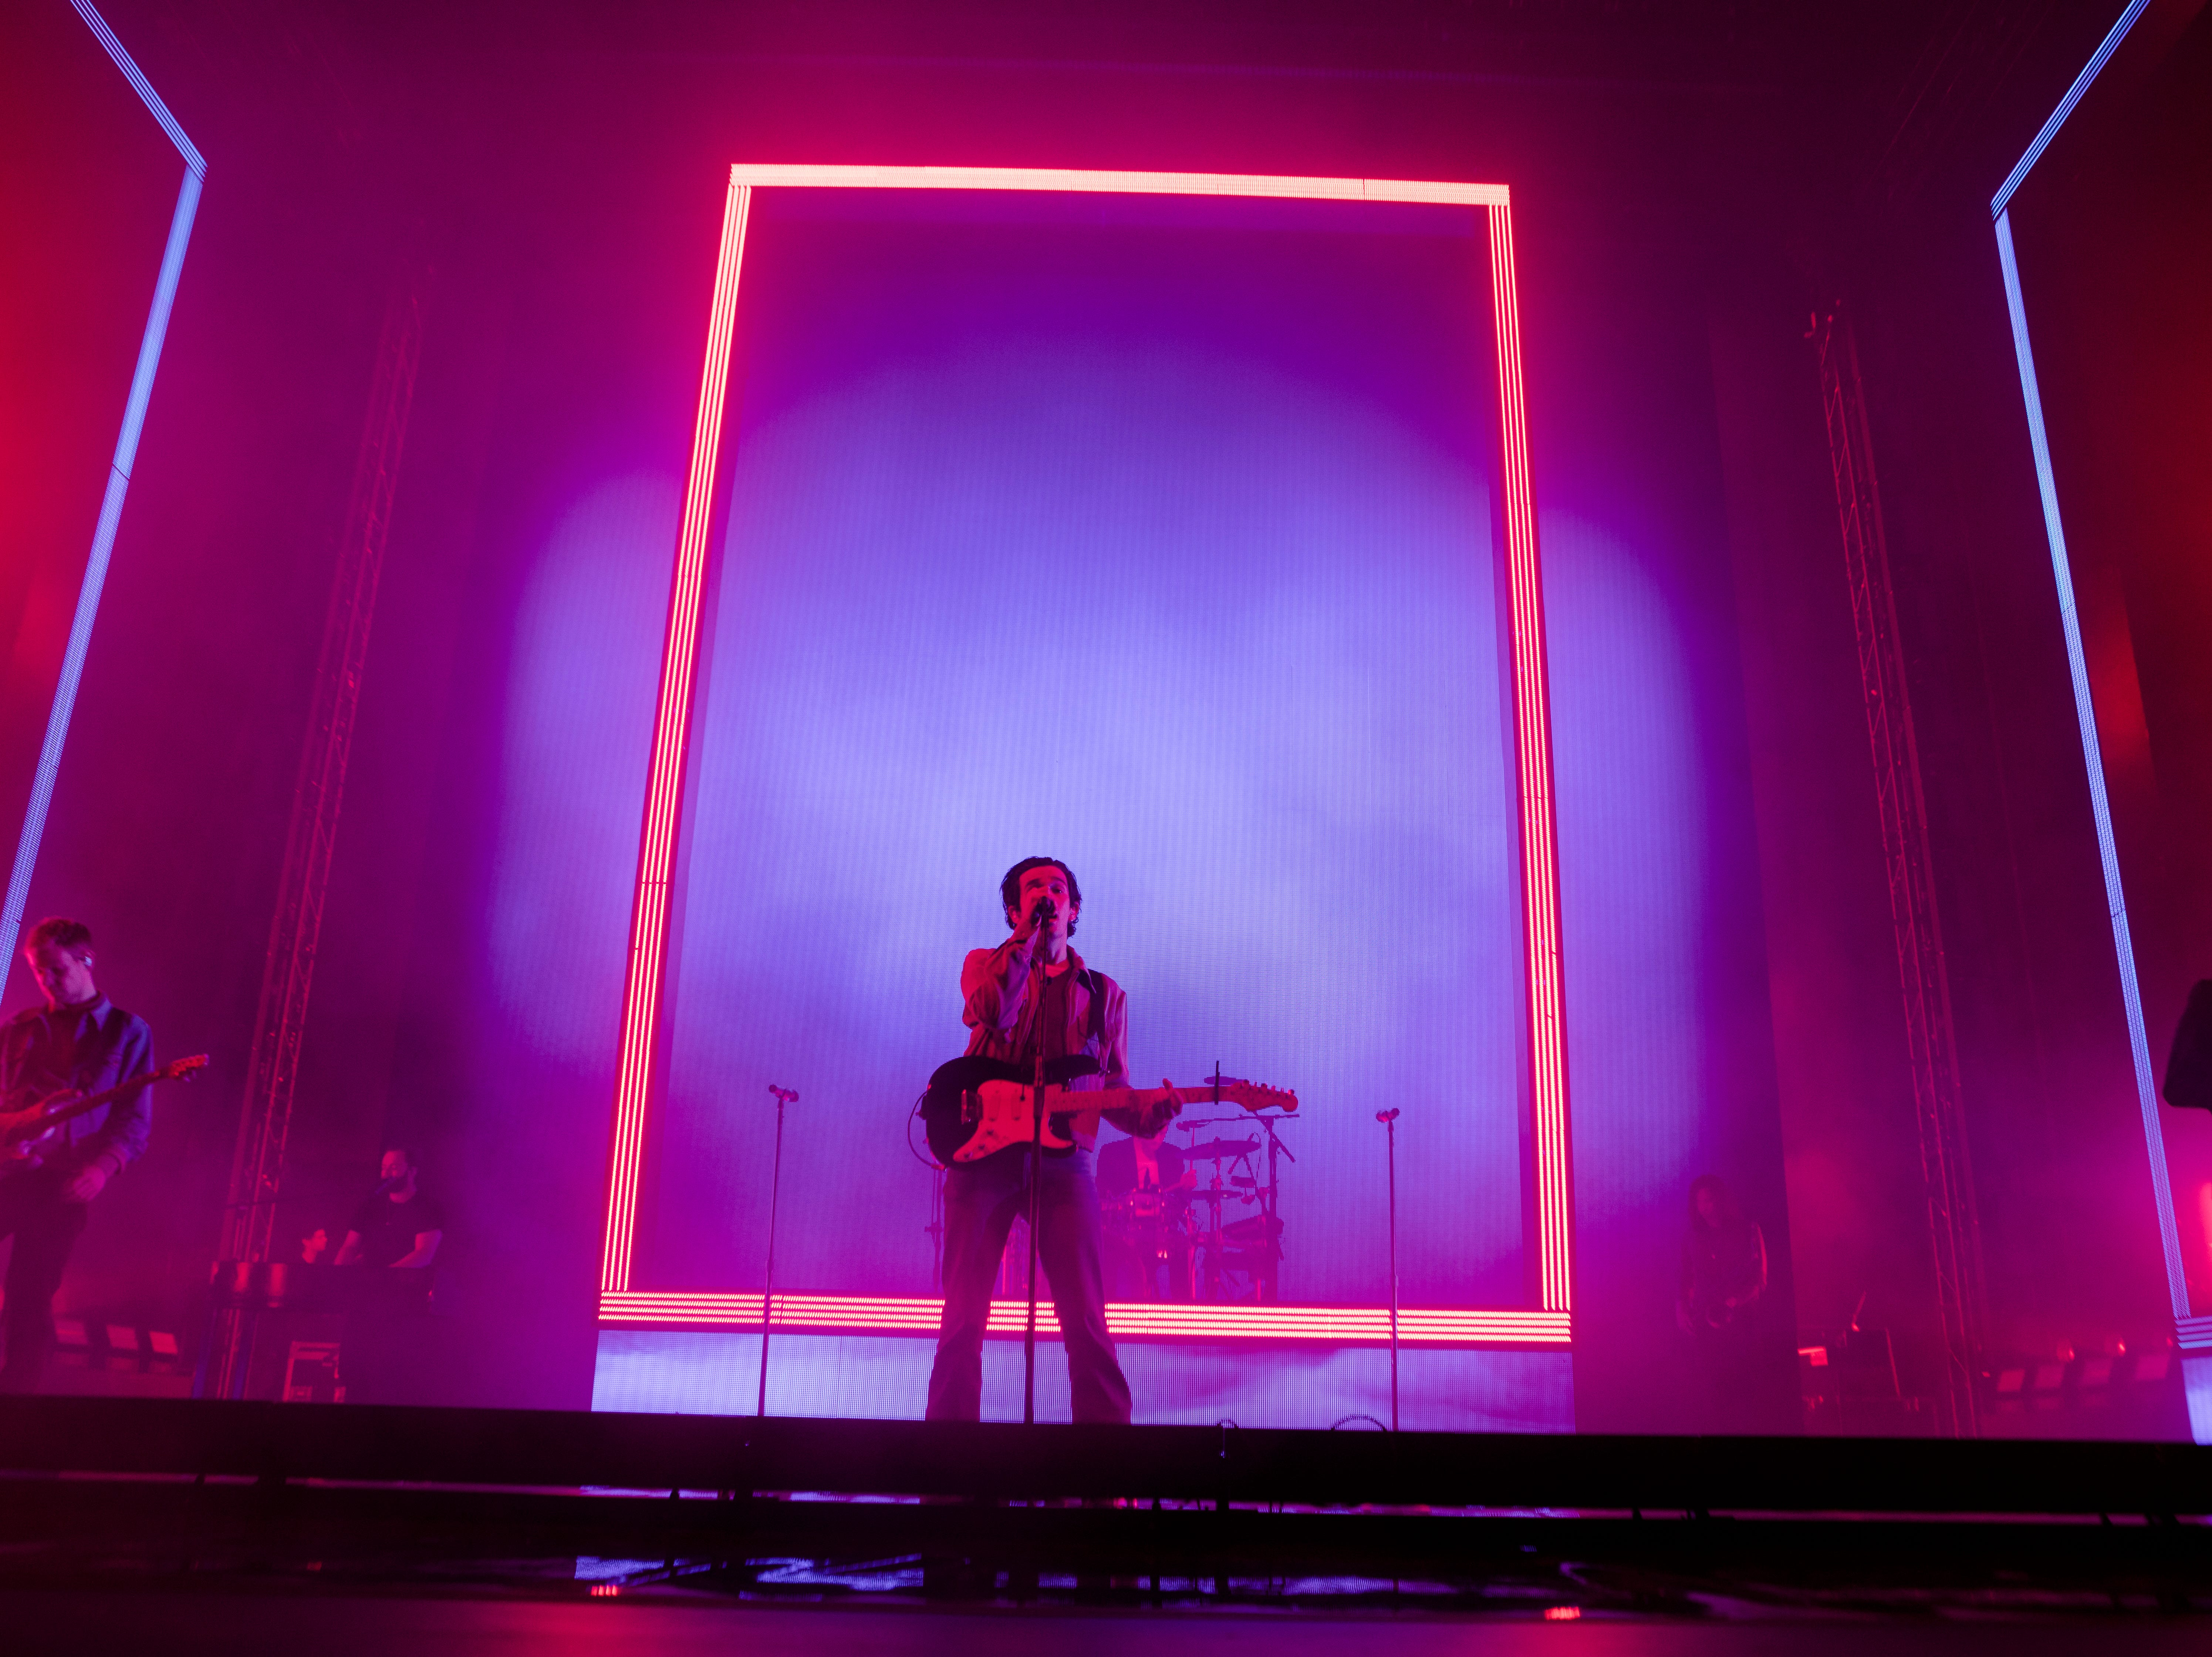 Matty Healy, The 1975 lead vocals, performs during The 1975 concert at the PNC Pavilion on Sunday, May 12, 2019 in Cincinnati.